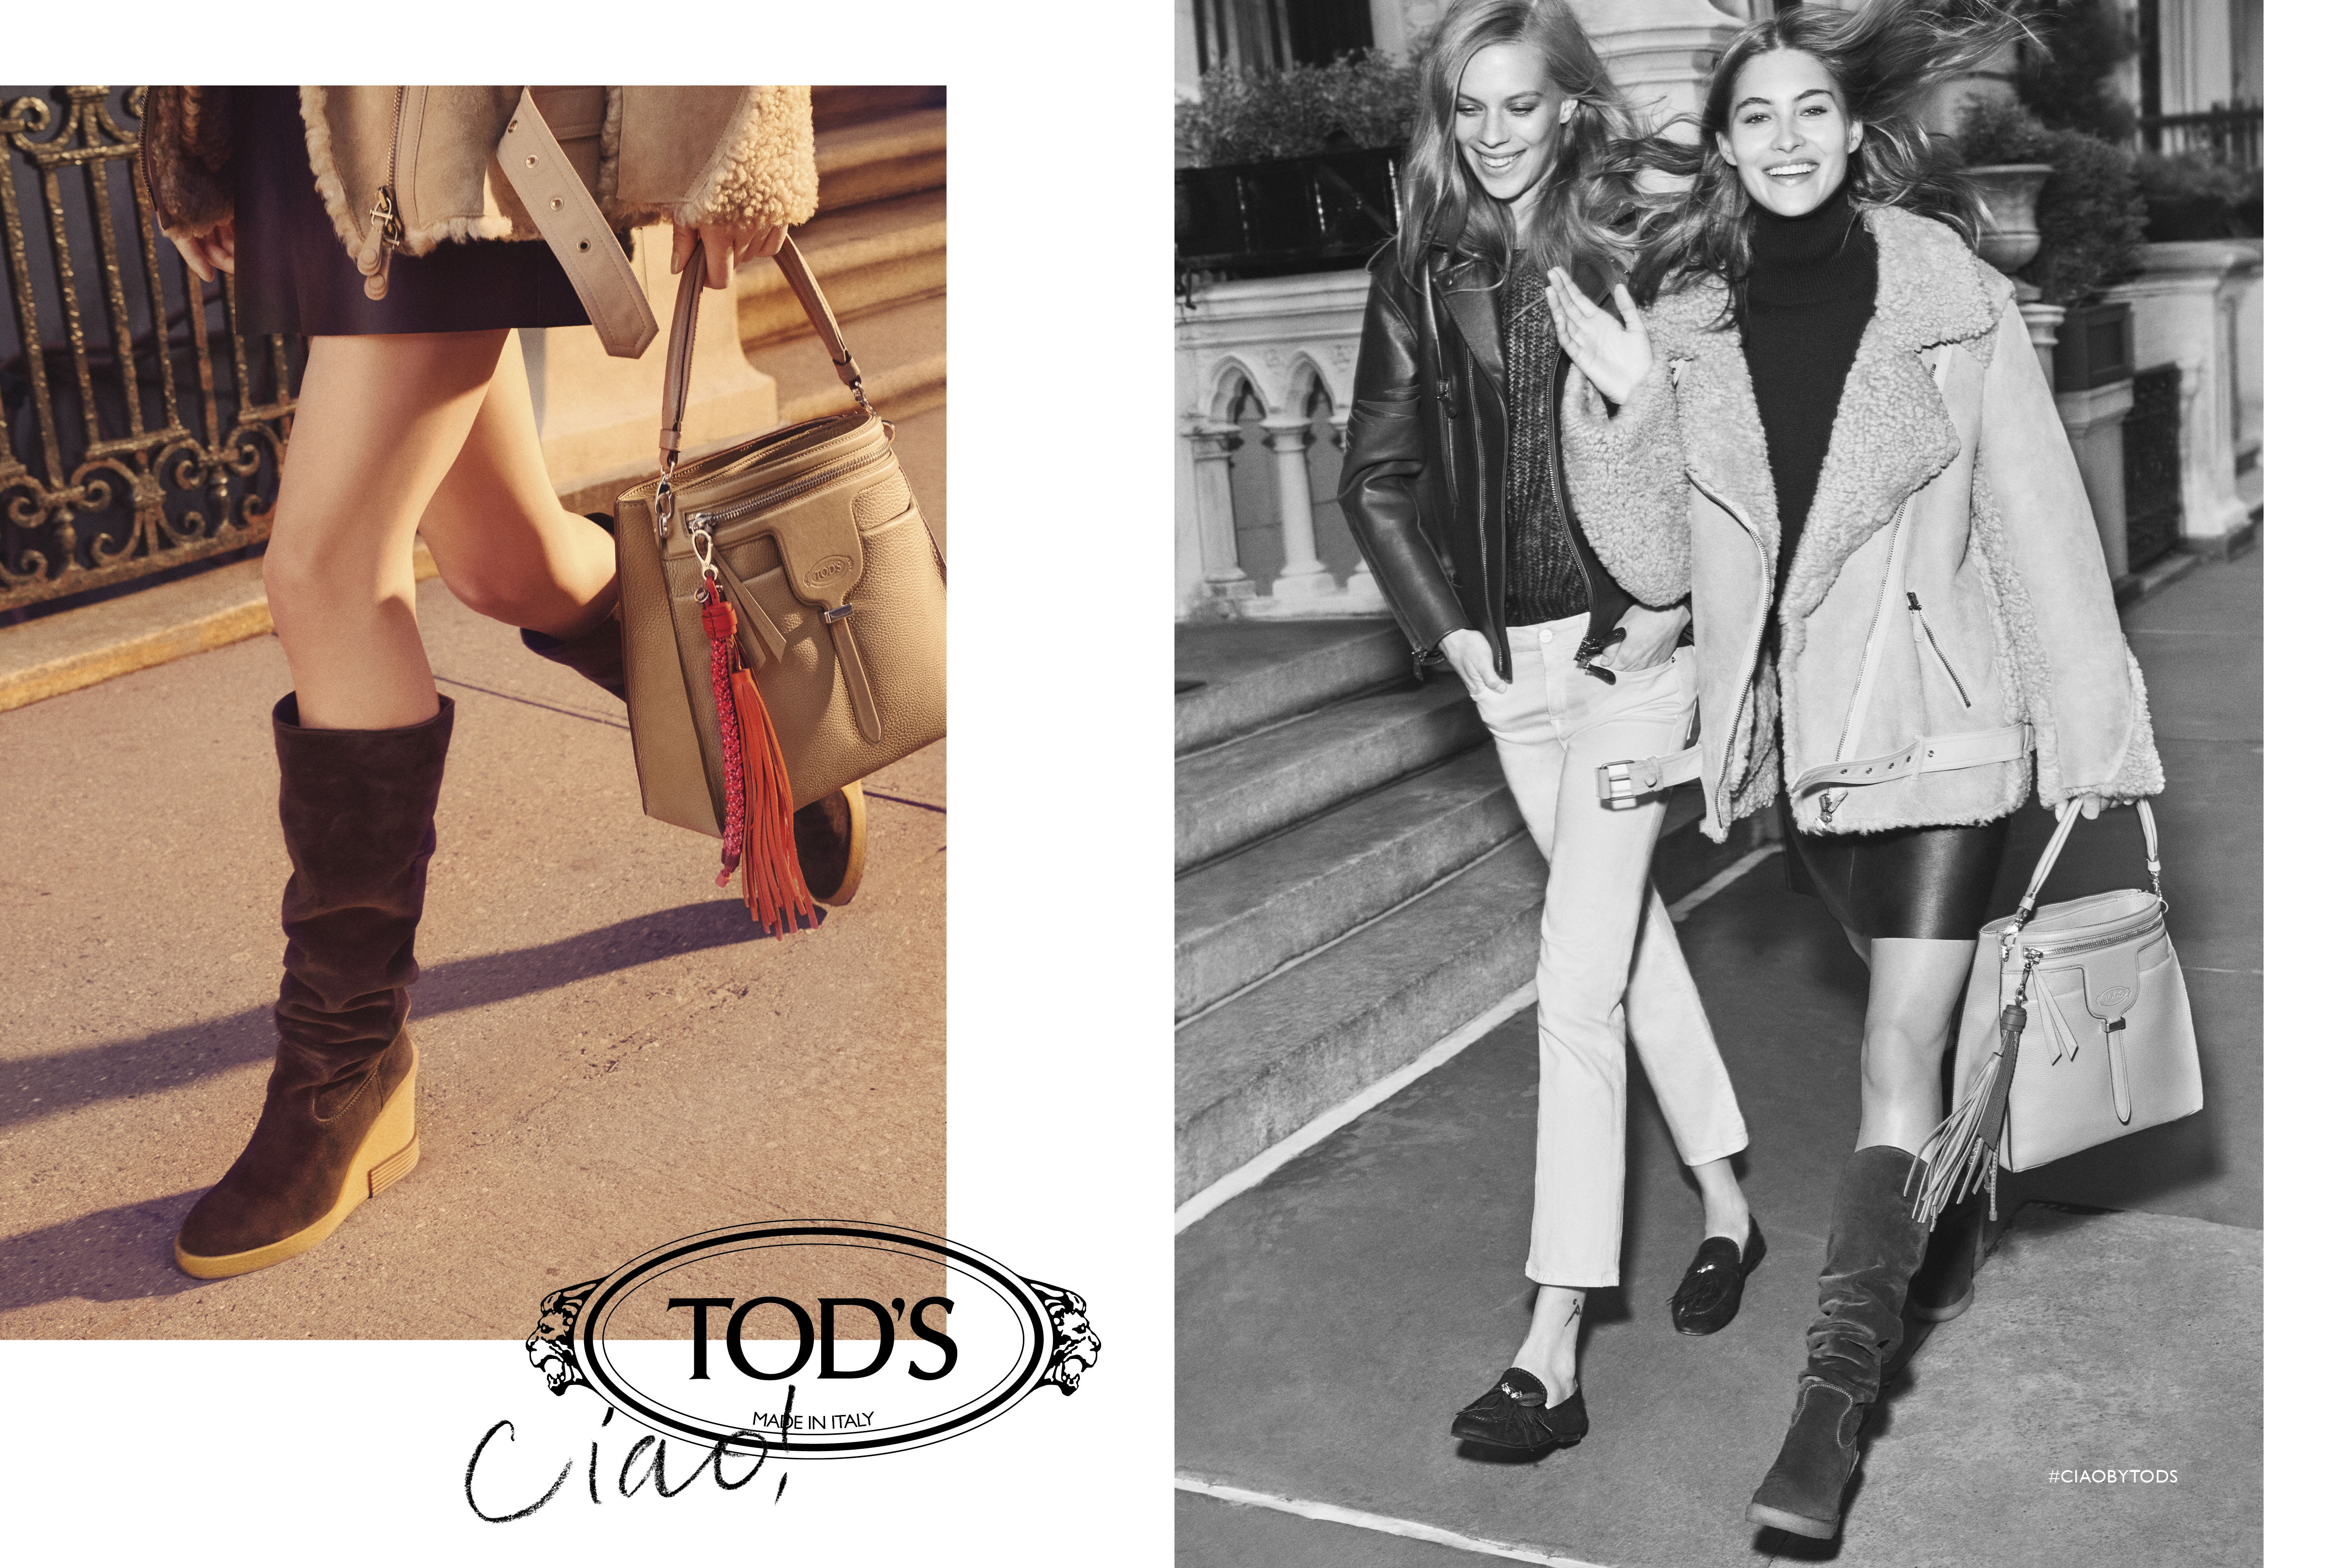 tods 3